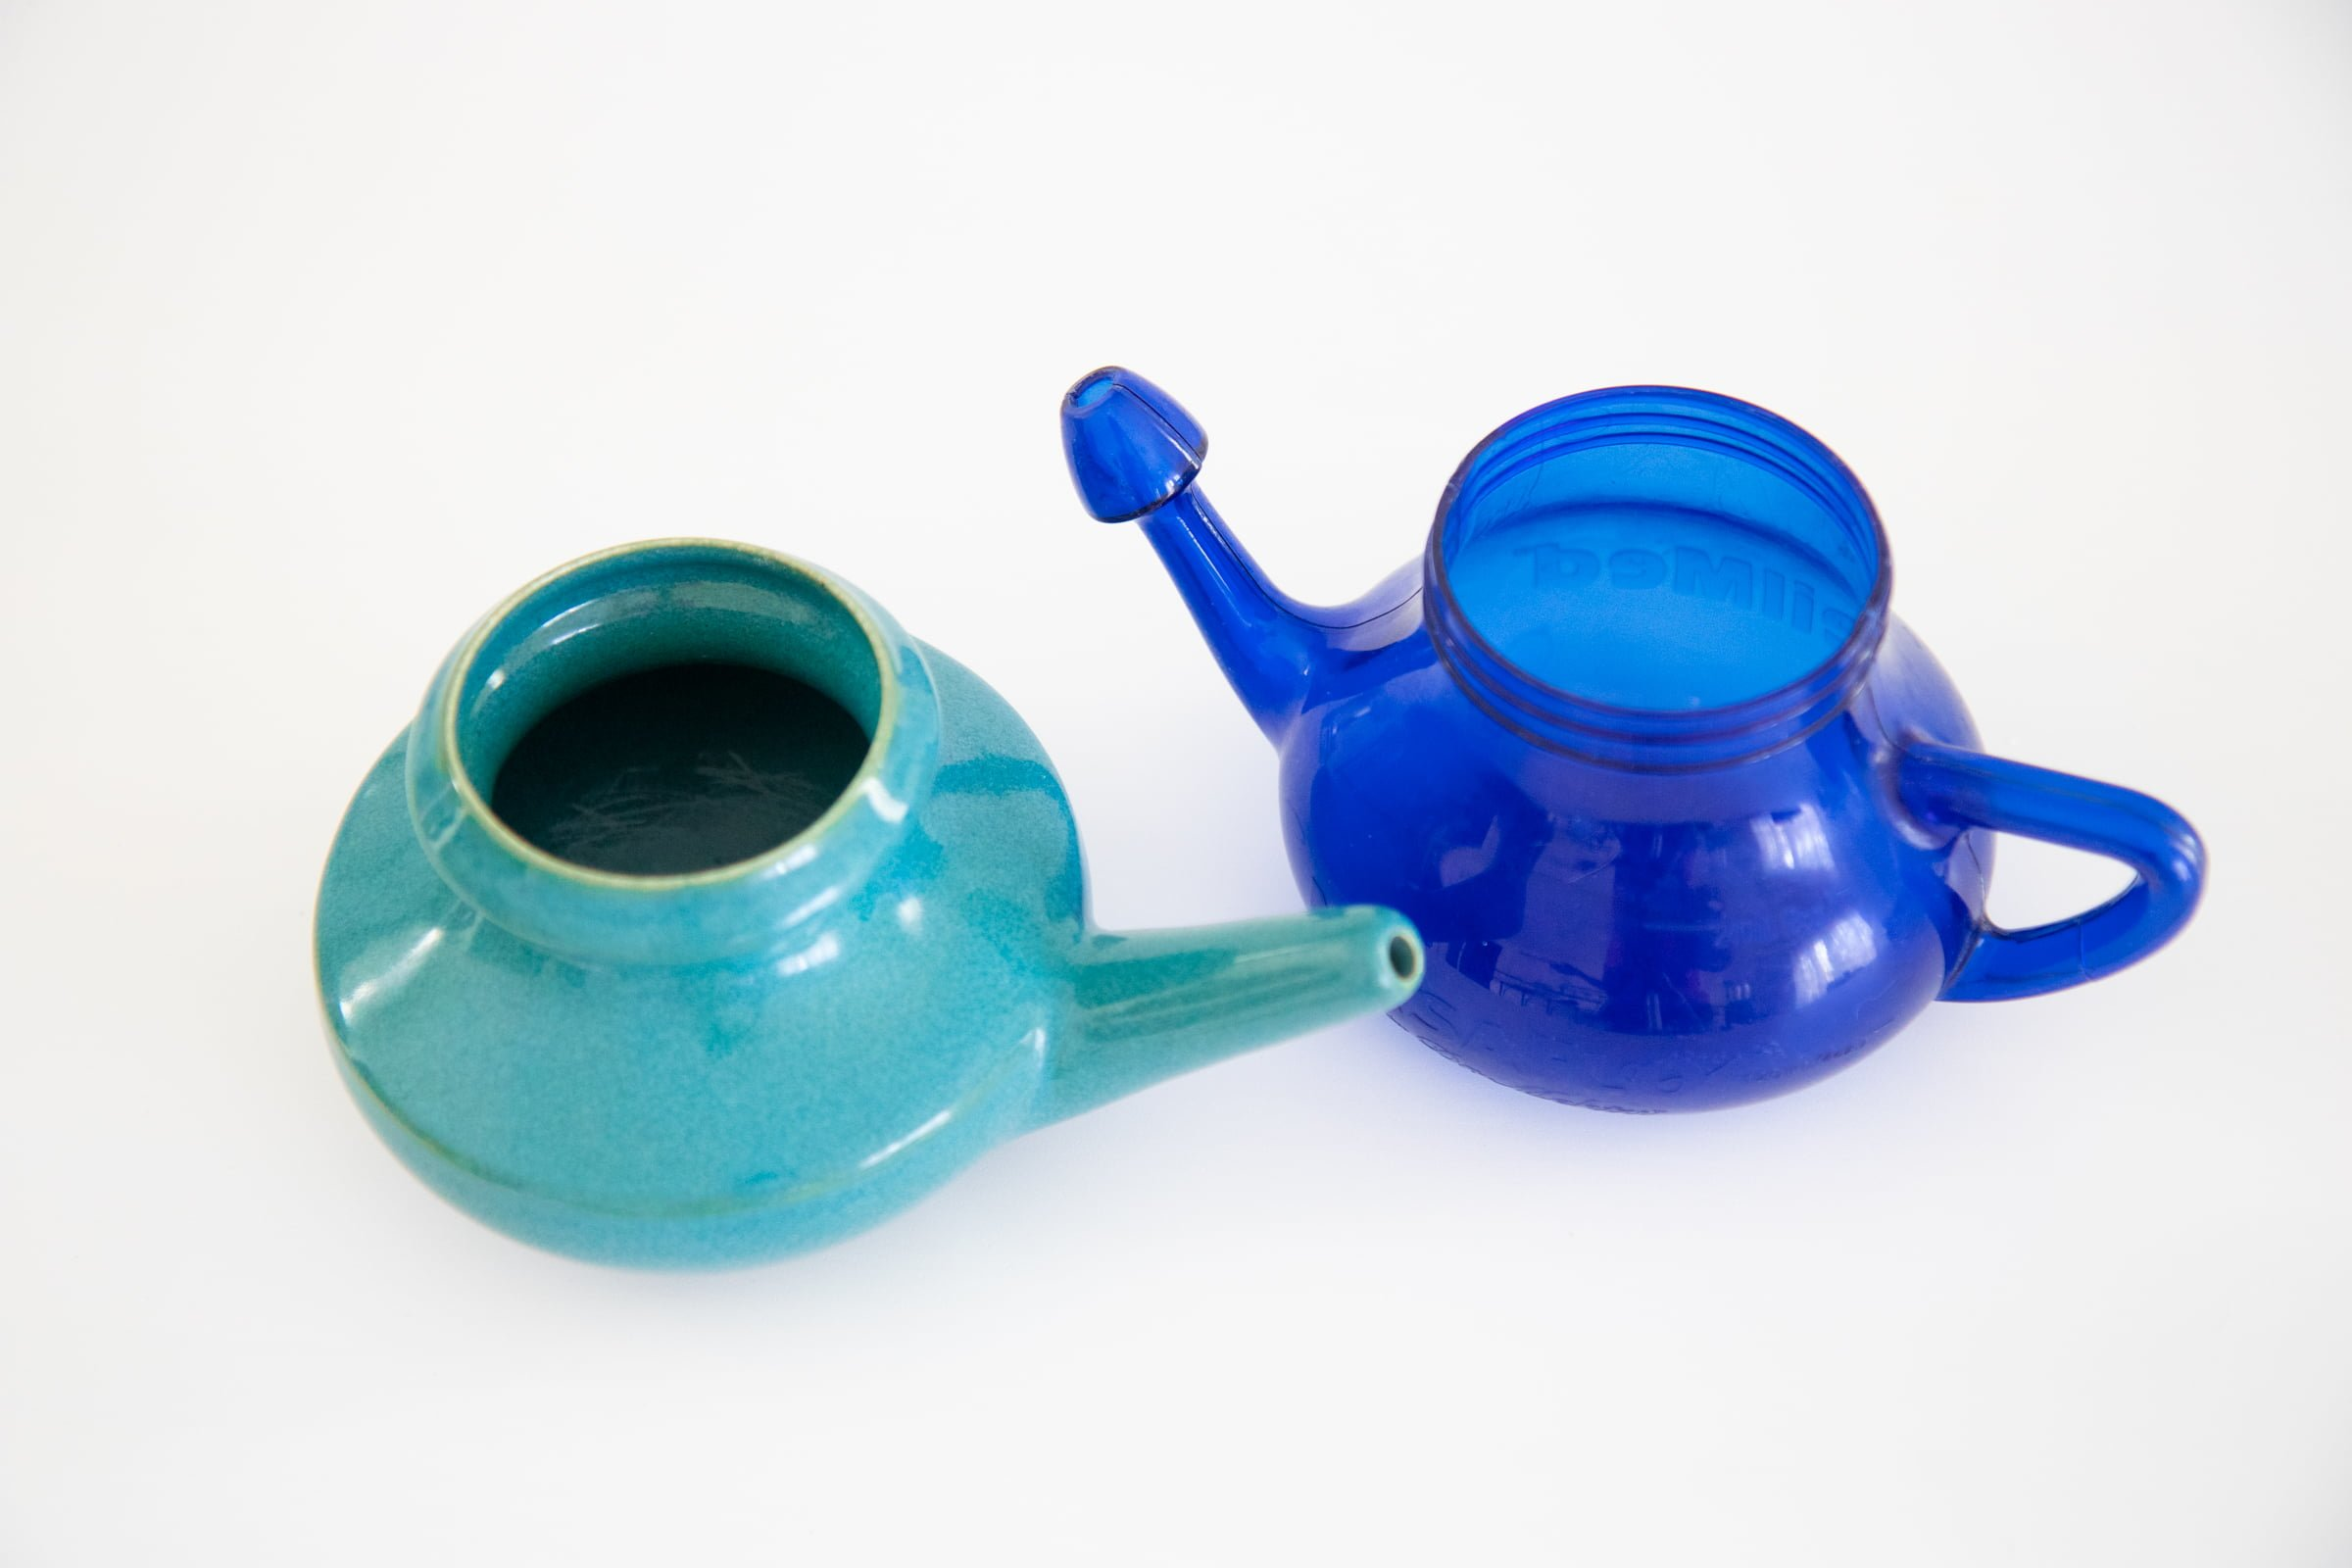 Ceramic neti pot next to a blue plastic neti pot.